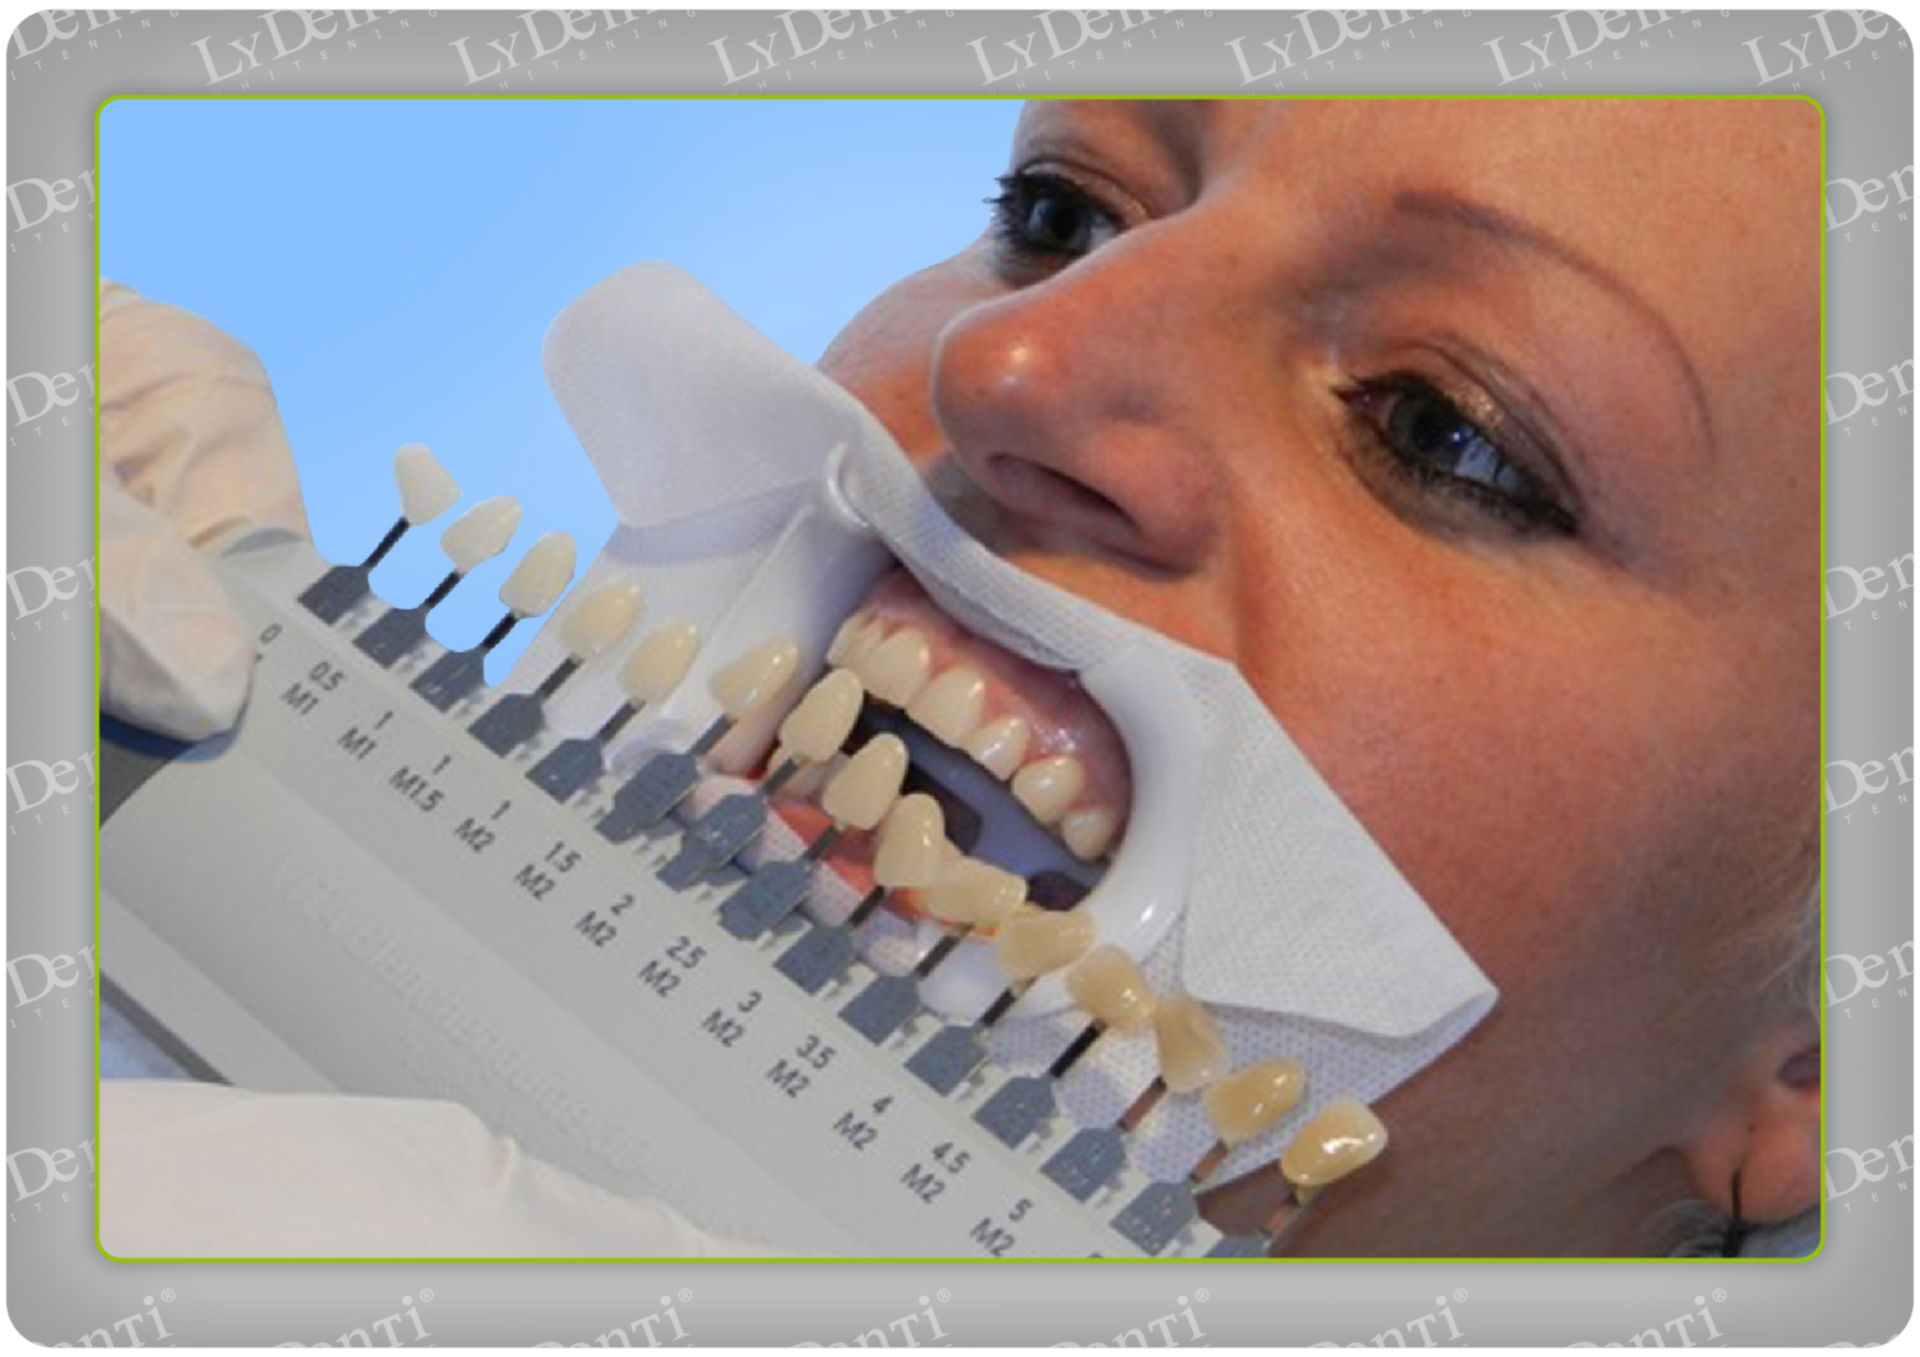 Blanqueamiento dental (12)